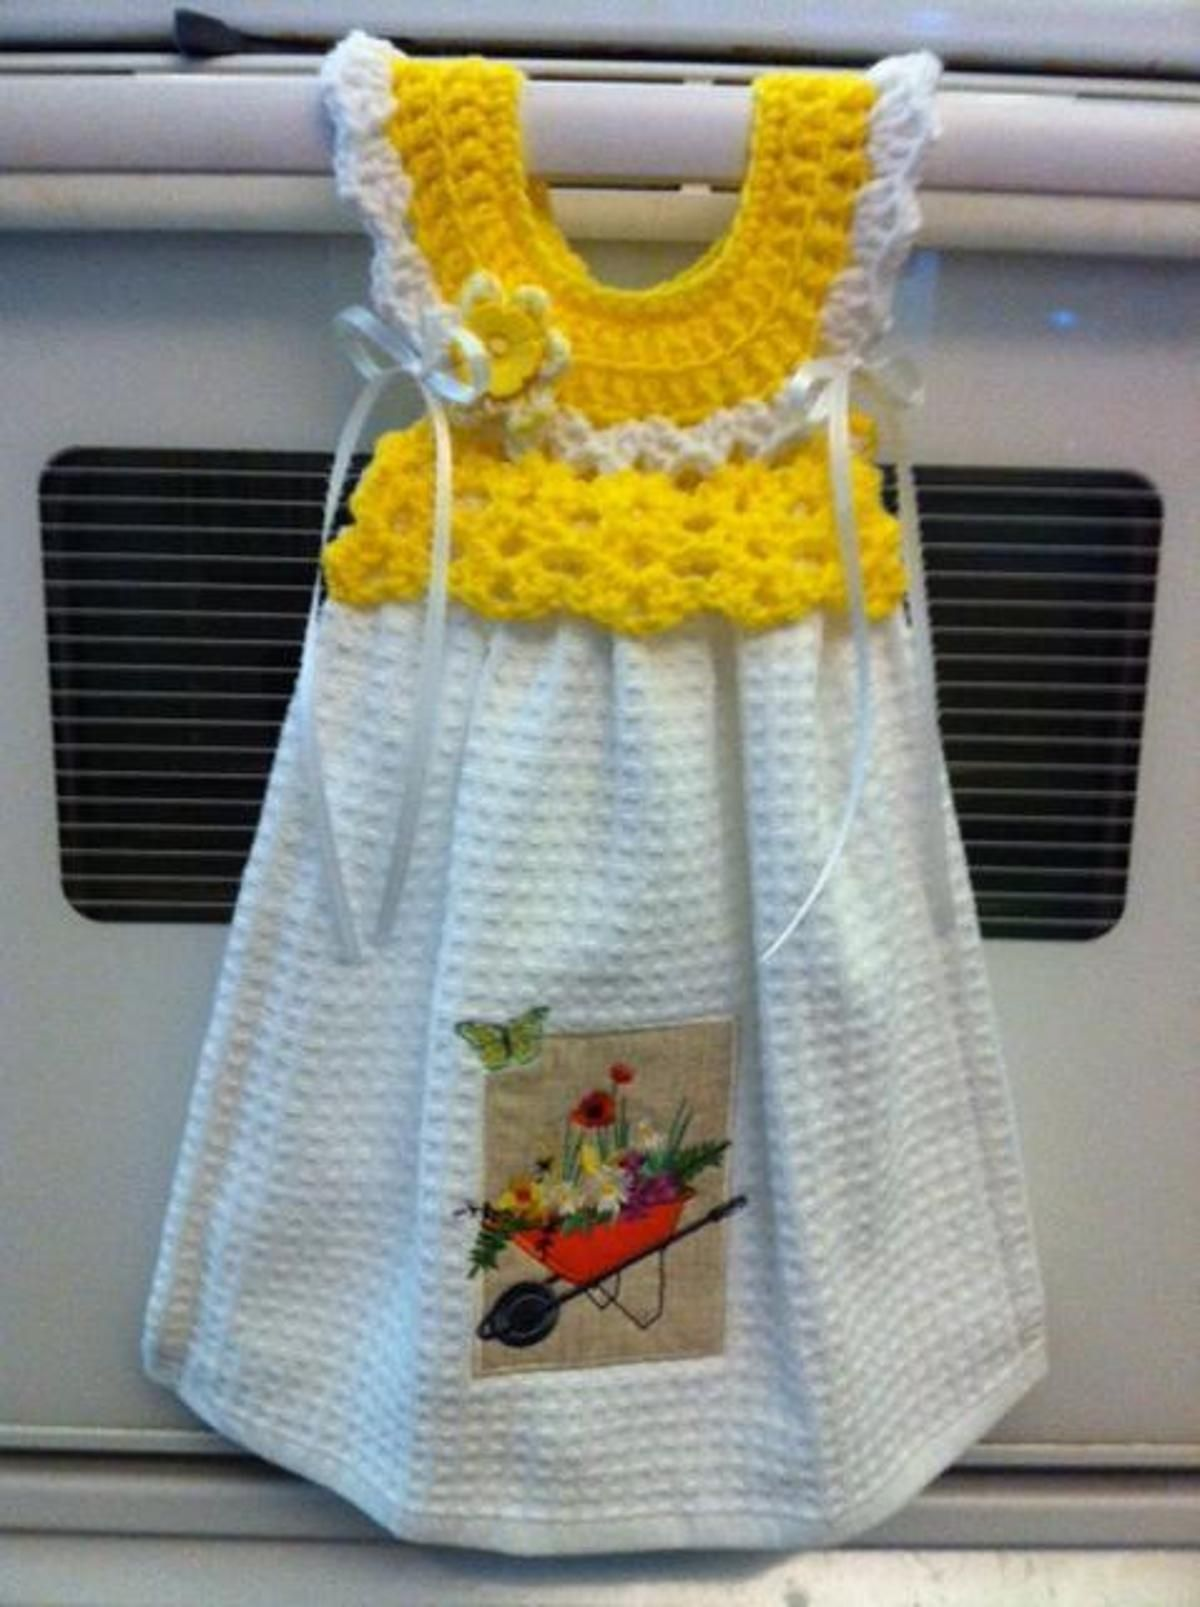 Oven Handle Dress Towel Topper   Oven, Towels and Crocheting patterns